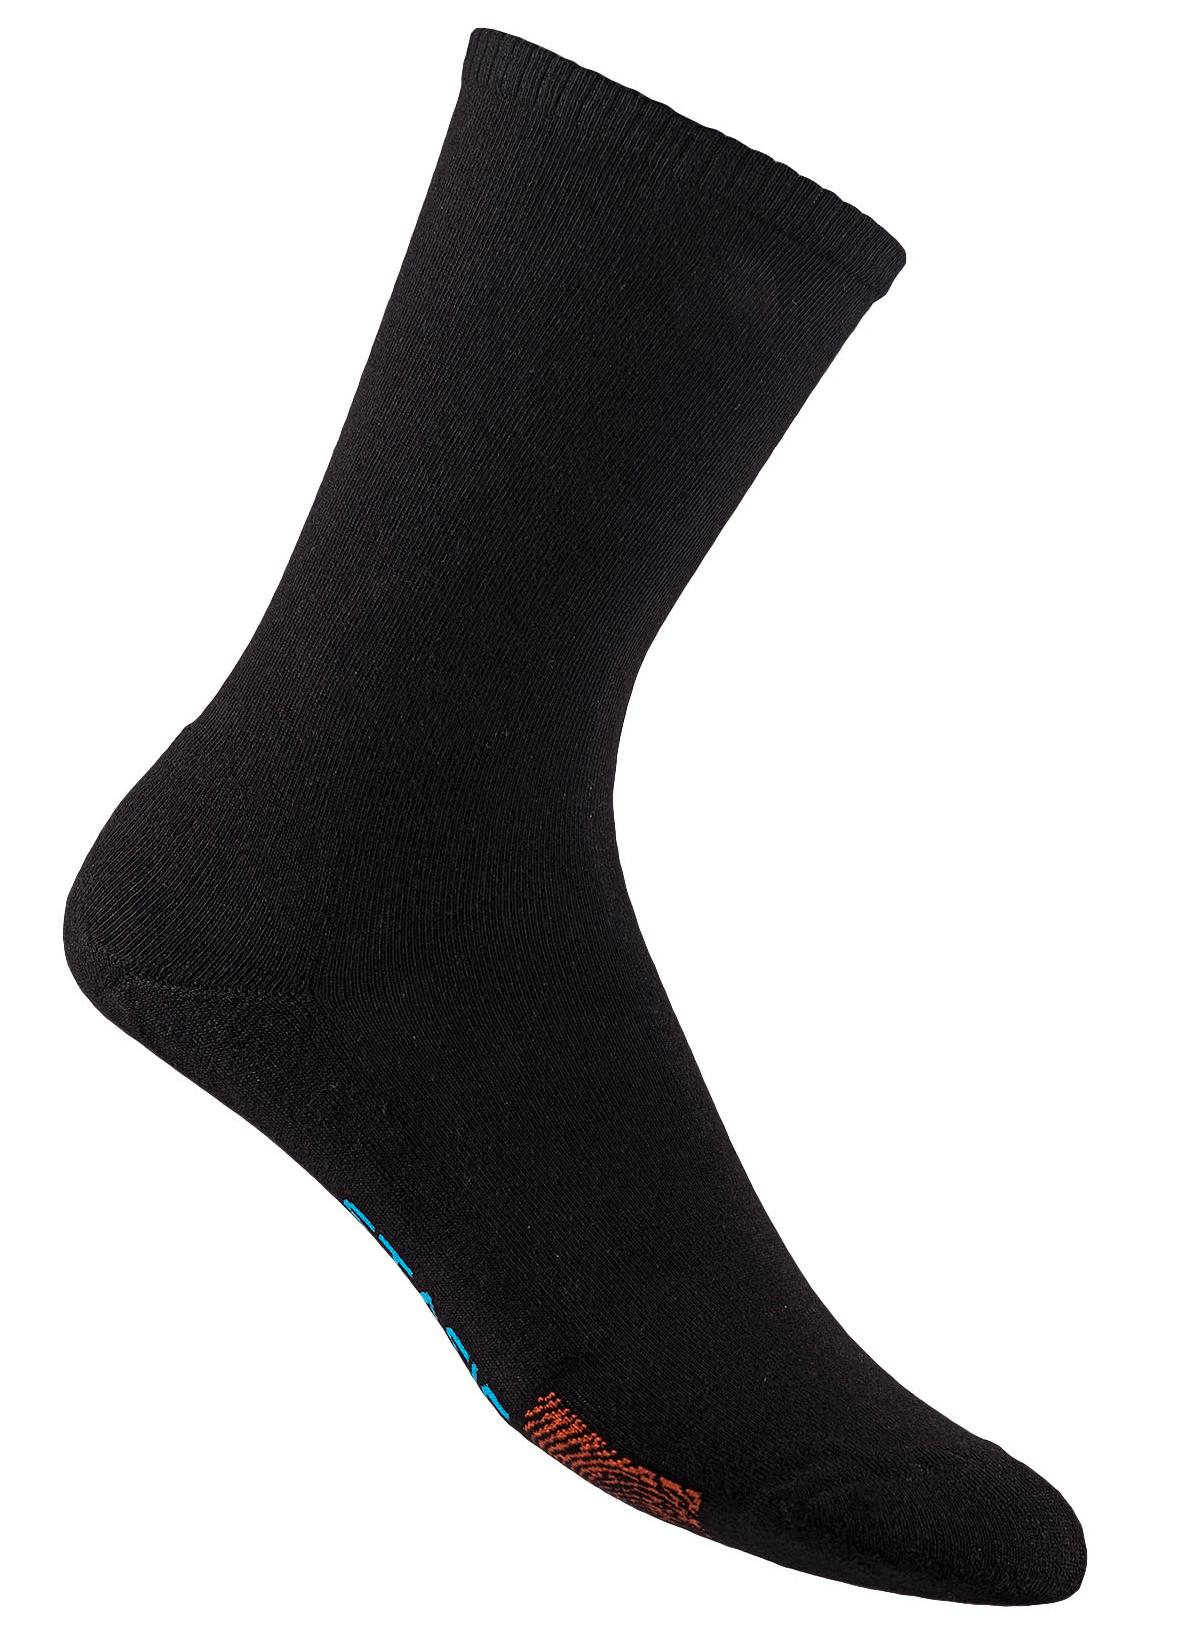 Neurosocks Wellness mit Soft-Touch Saum